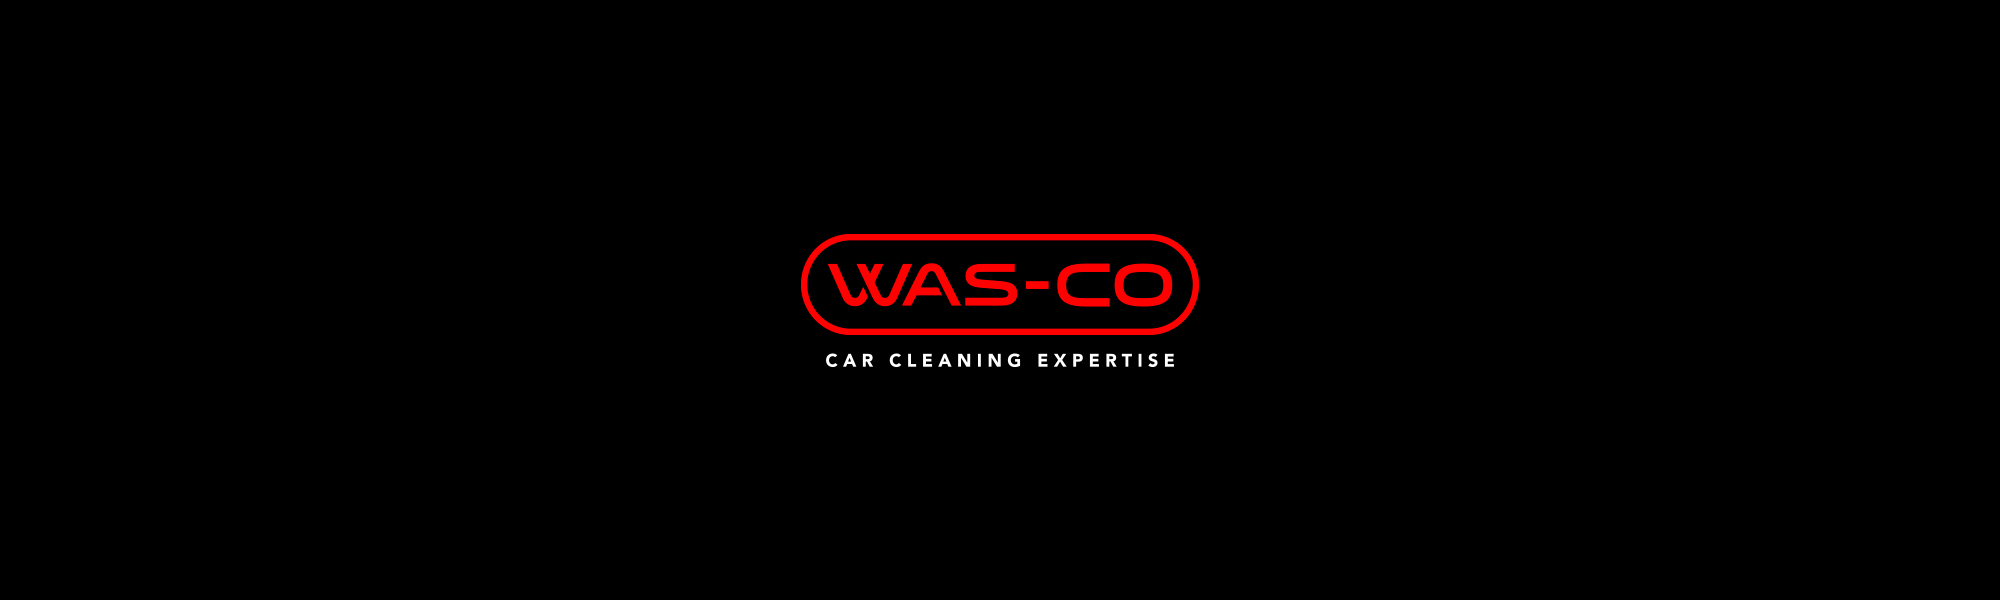 wasco-LOGO_NEW2